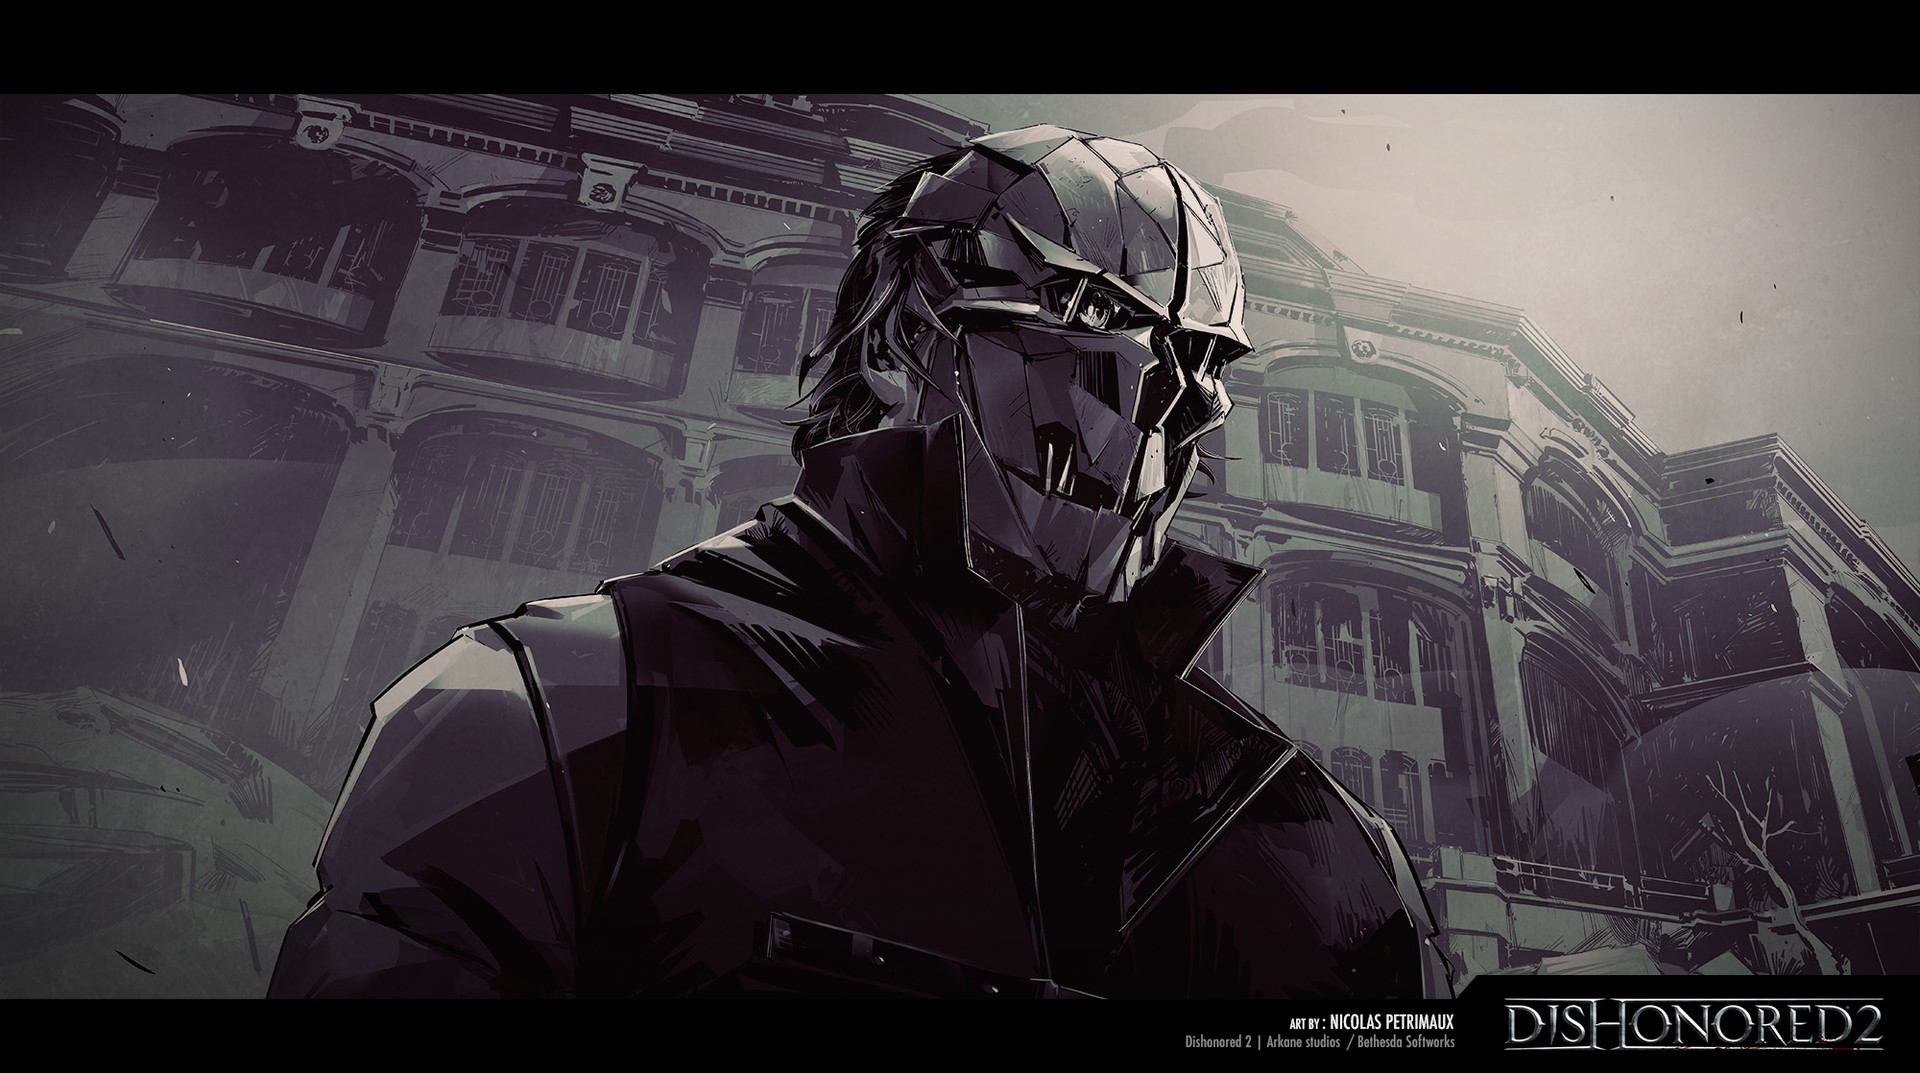 Nicolas petrimaux templatecredit dishonored2 gd variant